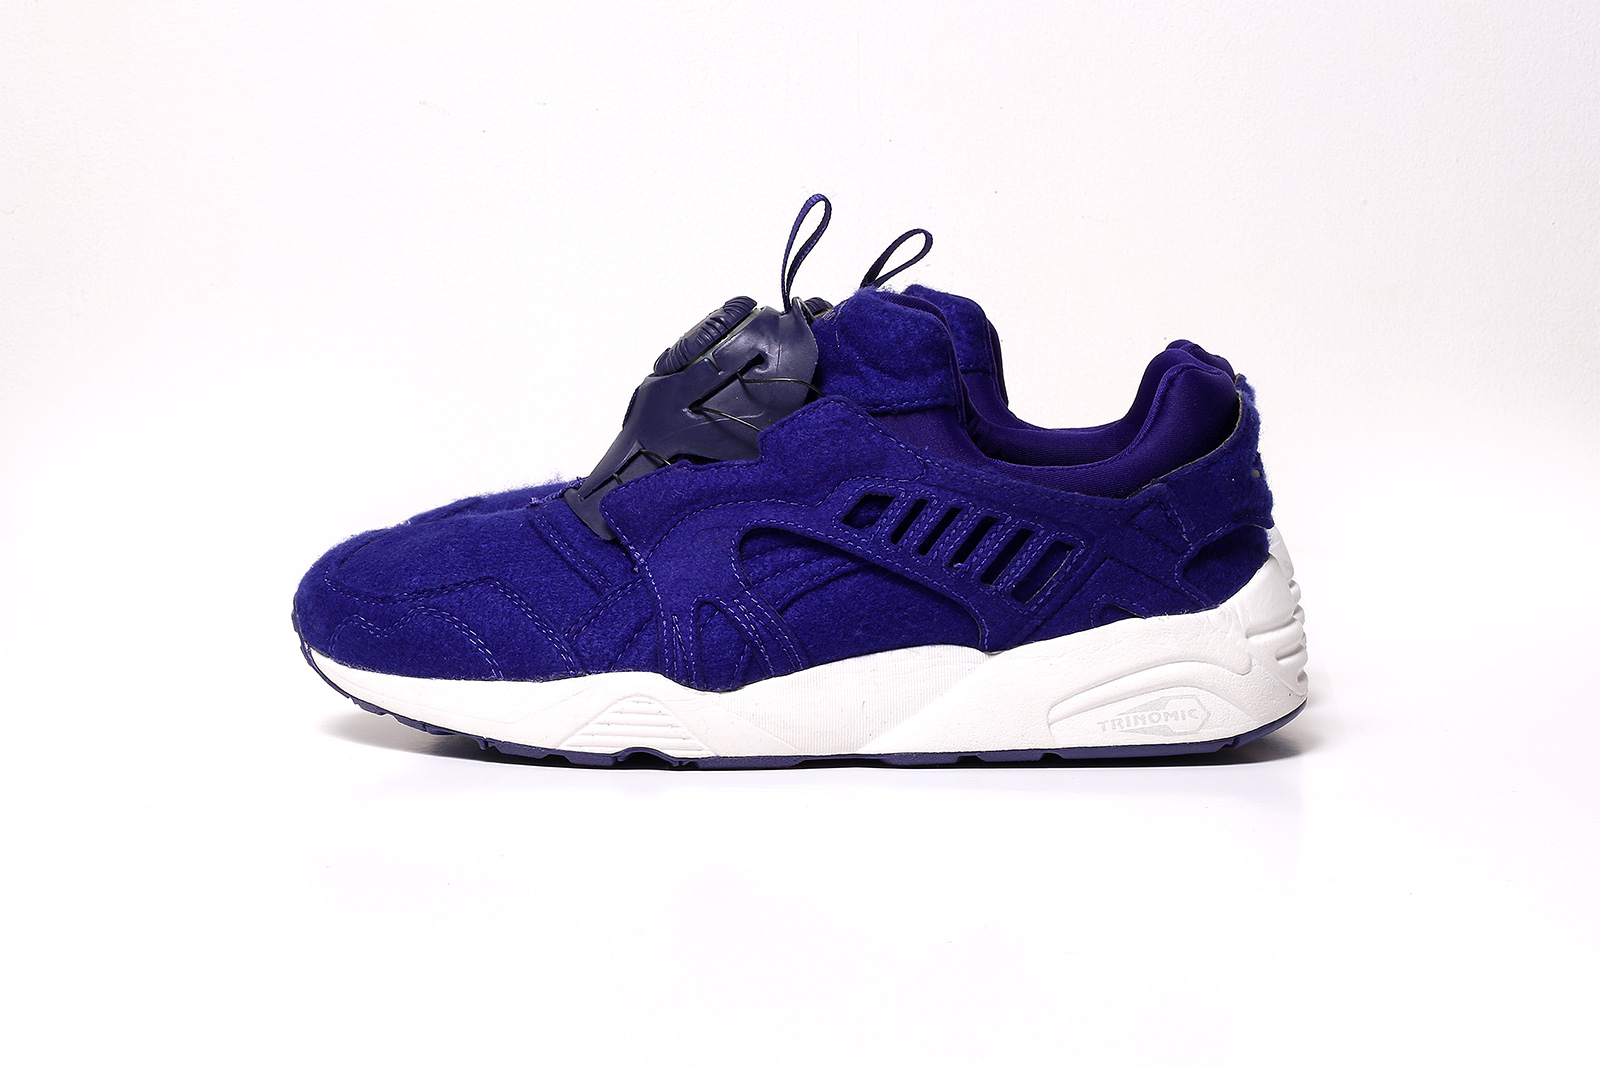 puma disc blaze bright wool pack sneakers addict. Black Bedroom Furniture Sets. Home Design Ideas